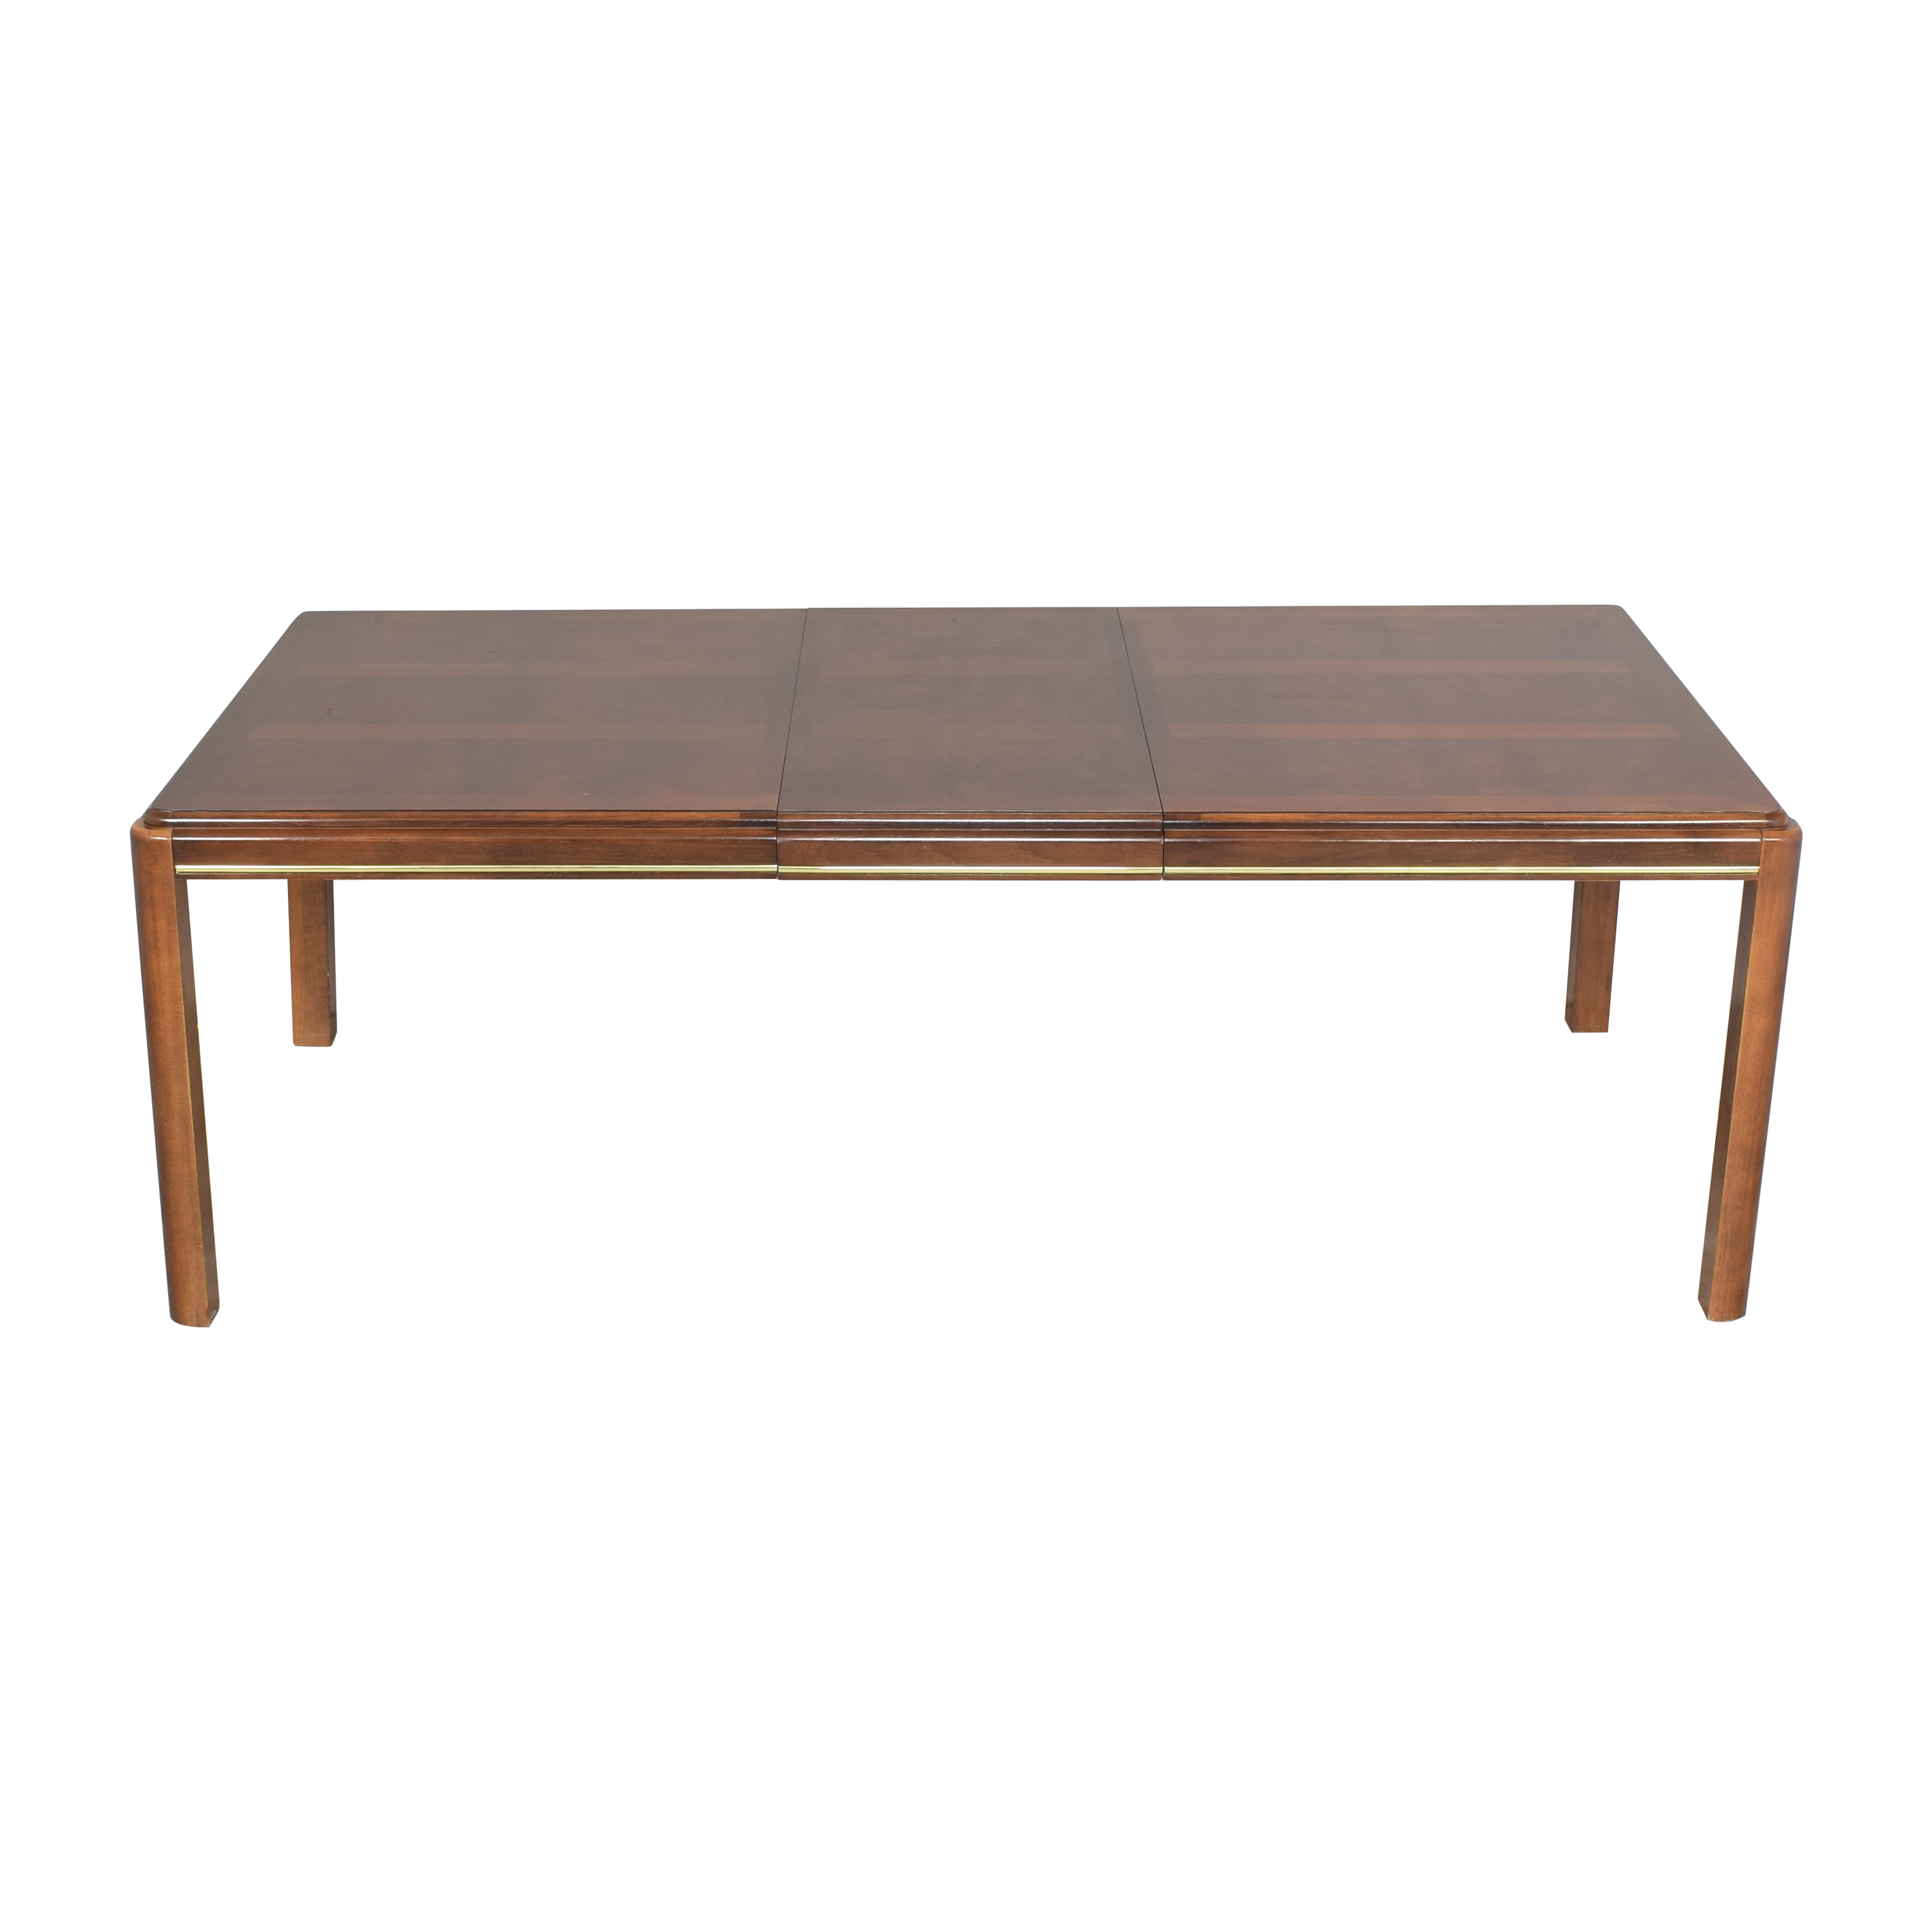 Thomasville Thomasville Founders Collection Dining Table nyc